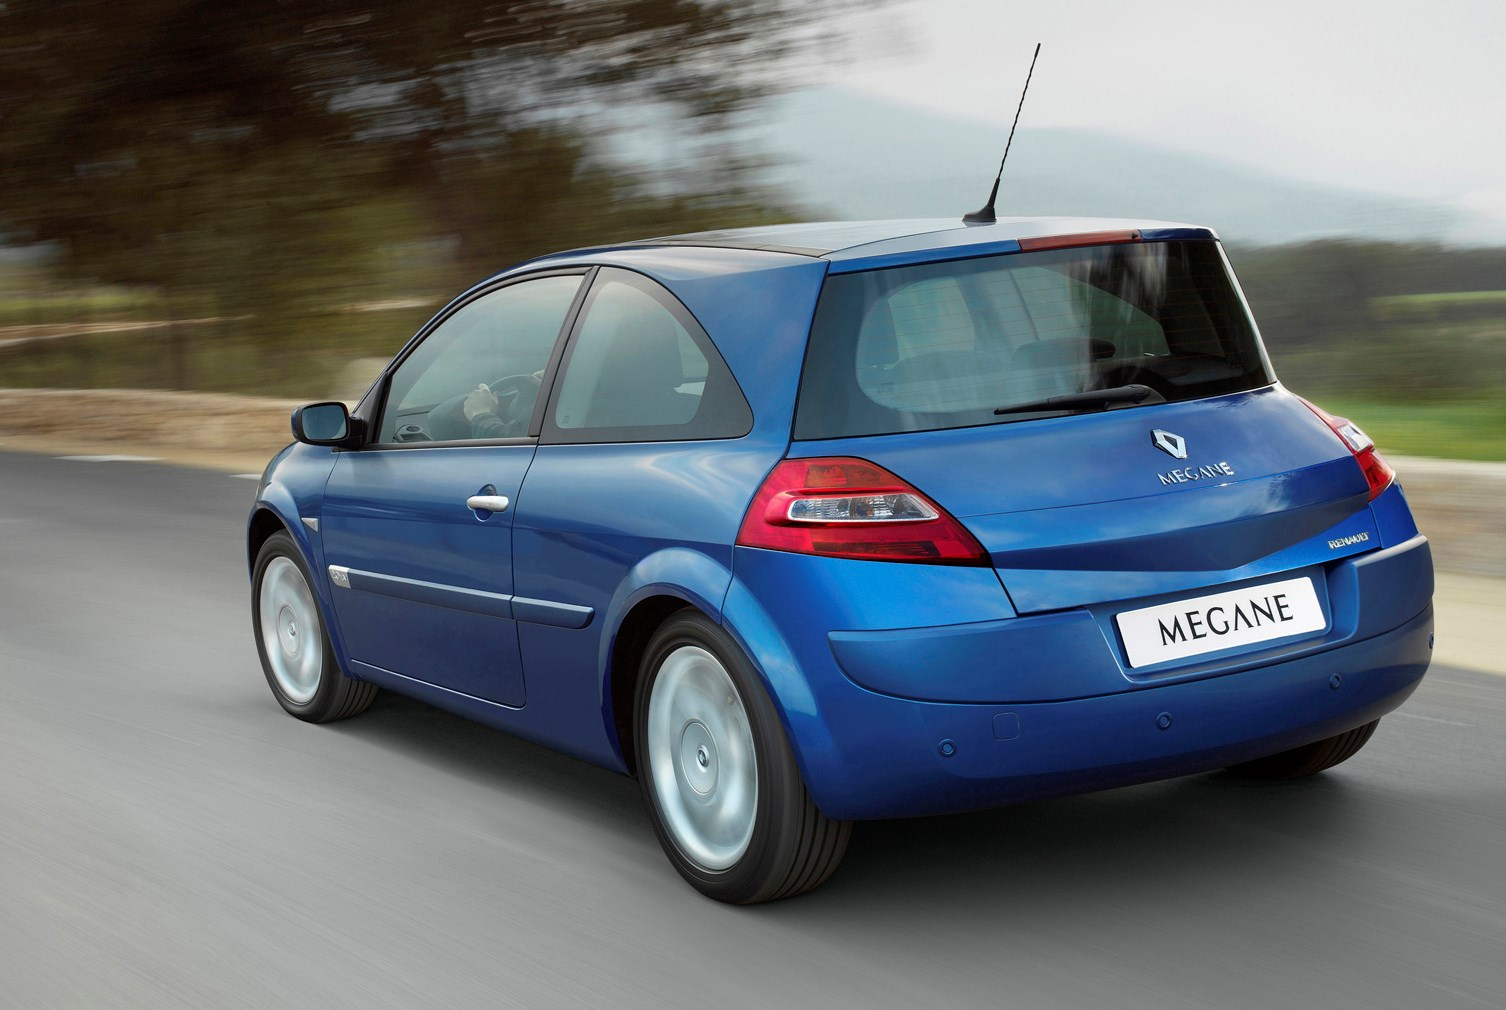 renault megane hatchback 2002 2006 photos parkers. Black Bedroom Furniture Sets. Home Design Ideas